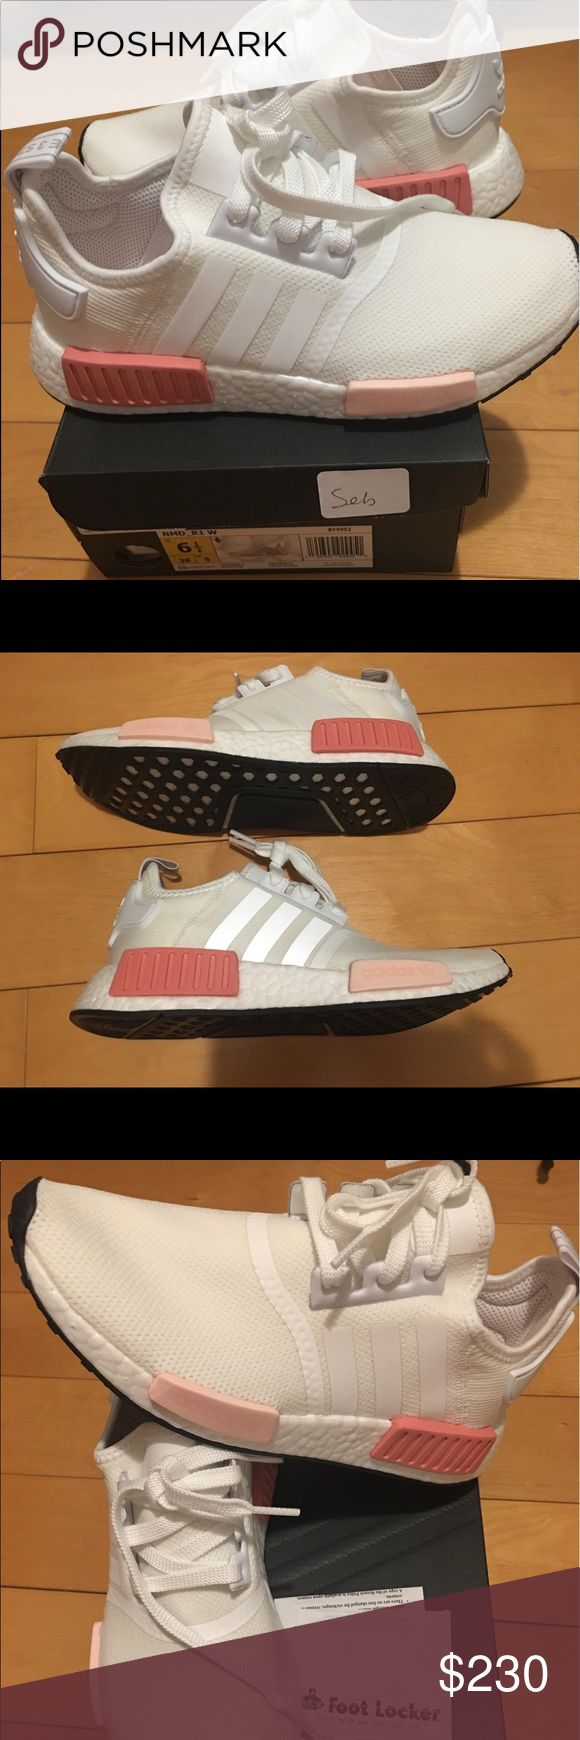 Adidas Nmd R1 women size 6 1/2 ( Icy rose ) New and authentic .bought at footlocker .size 61/2 in women .sold out size .boost technology very comfortable sneaker .come with original receipt with purchase adidas Shoes Sneakers